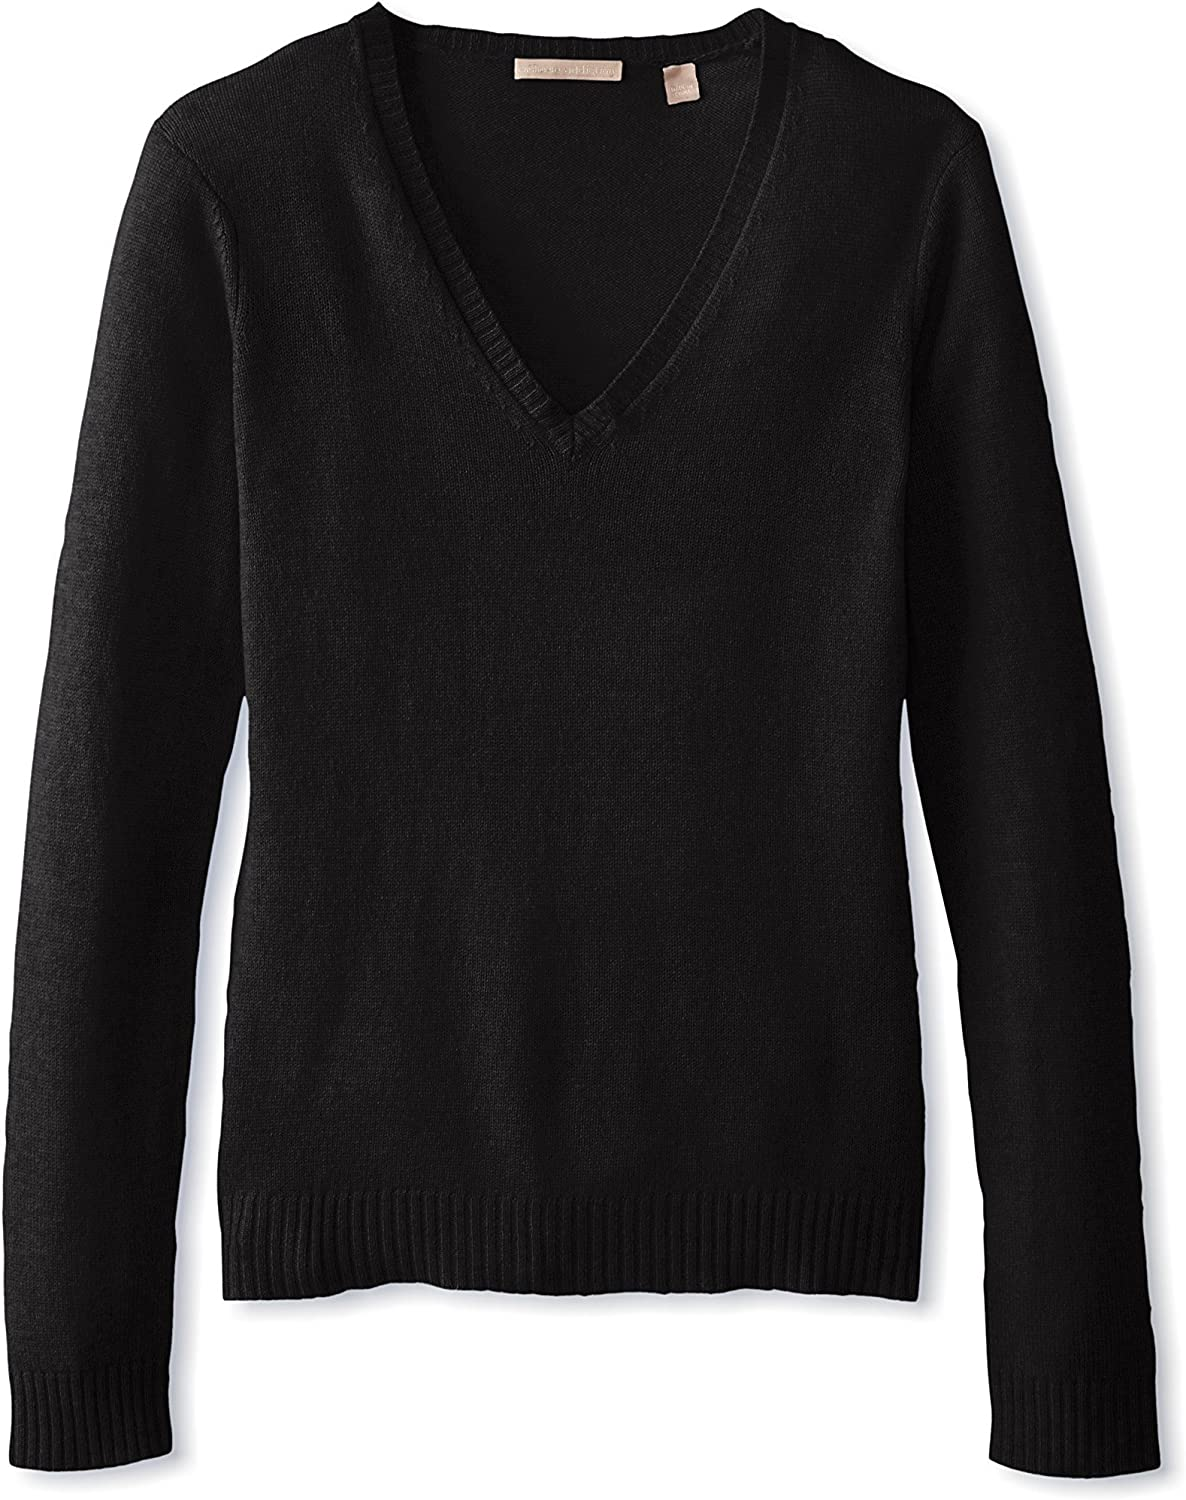 Cashmere Addiction Women's Long Sleeve VNeck Sweater